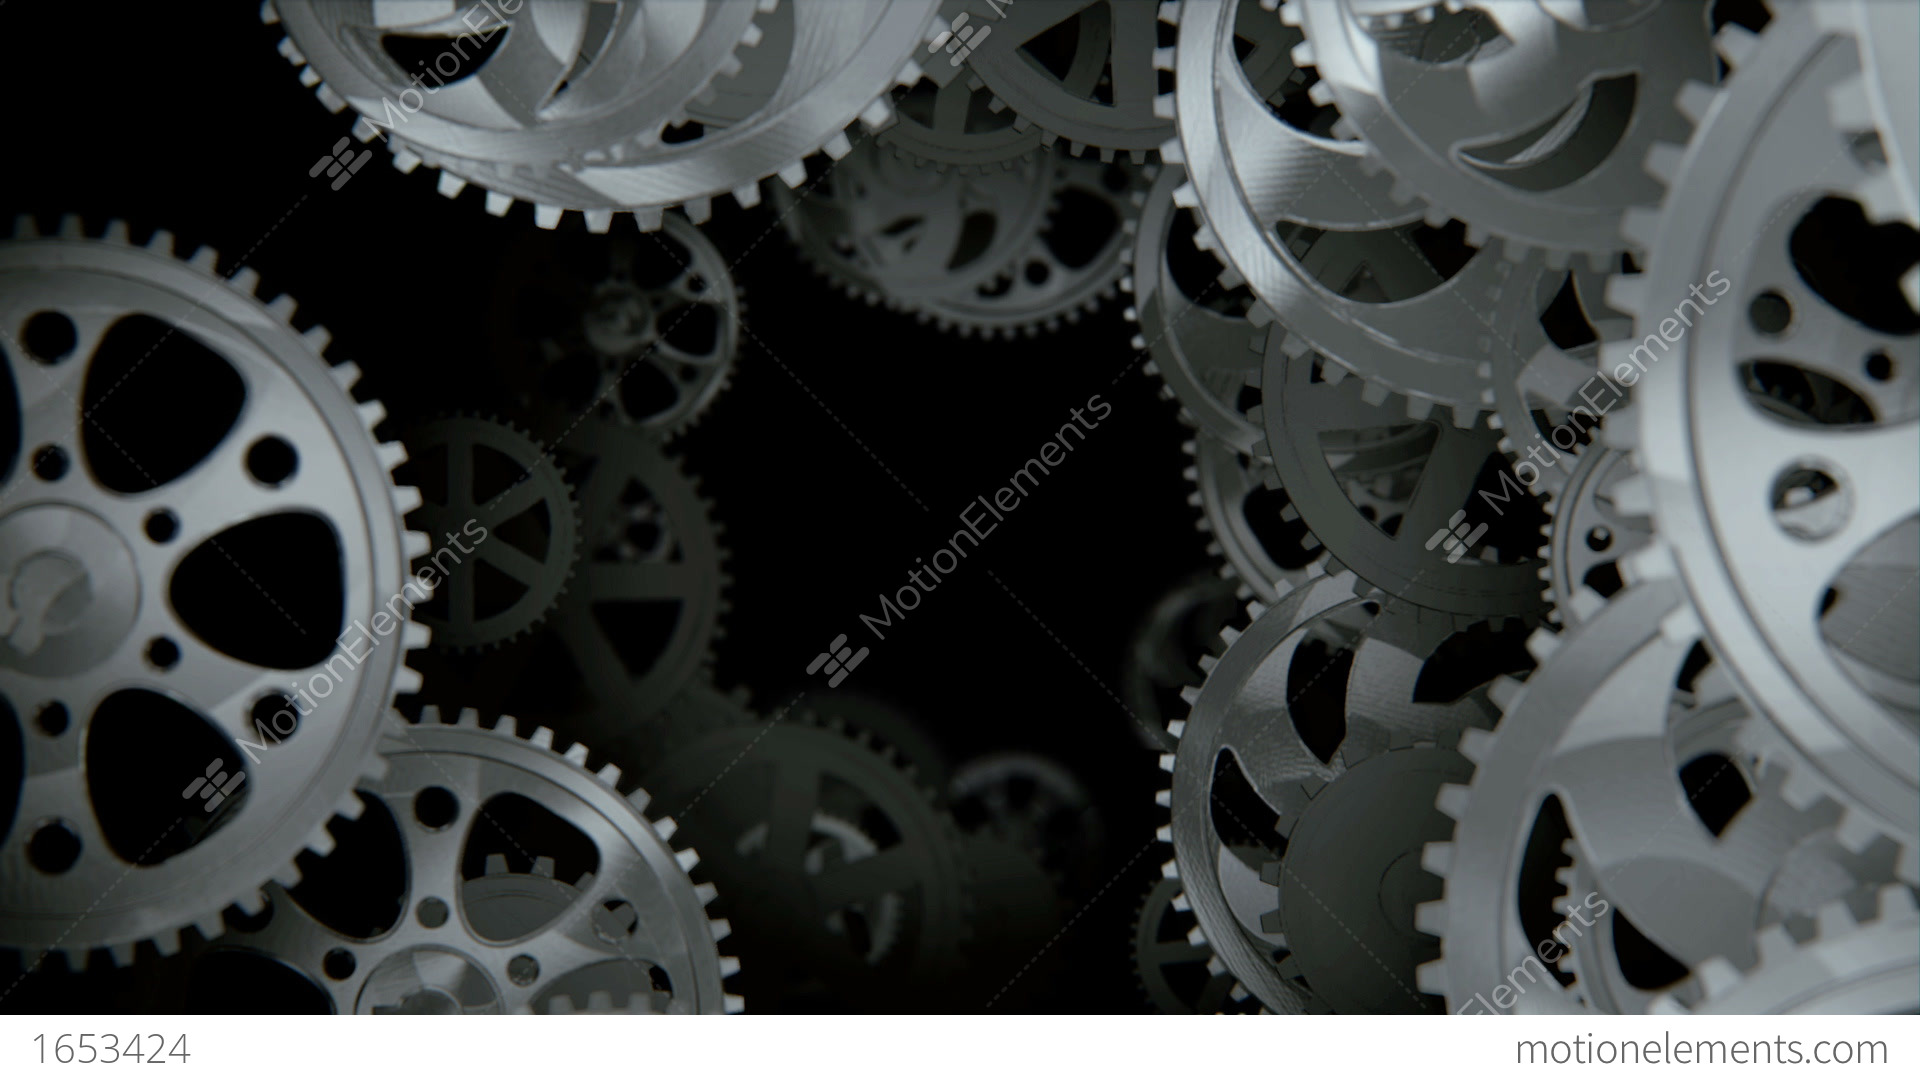 Camera Moving Through Spinning Gears And Cogs Stock ...